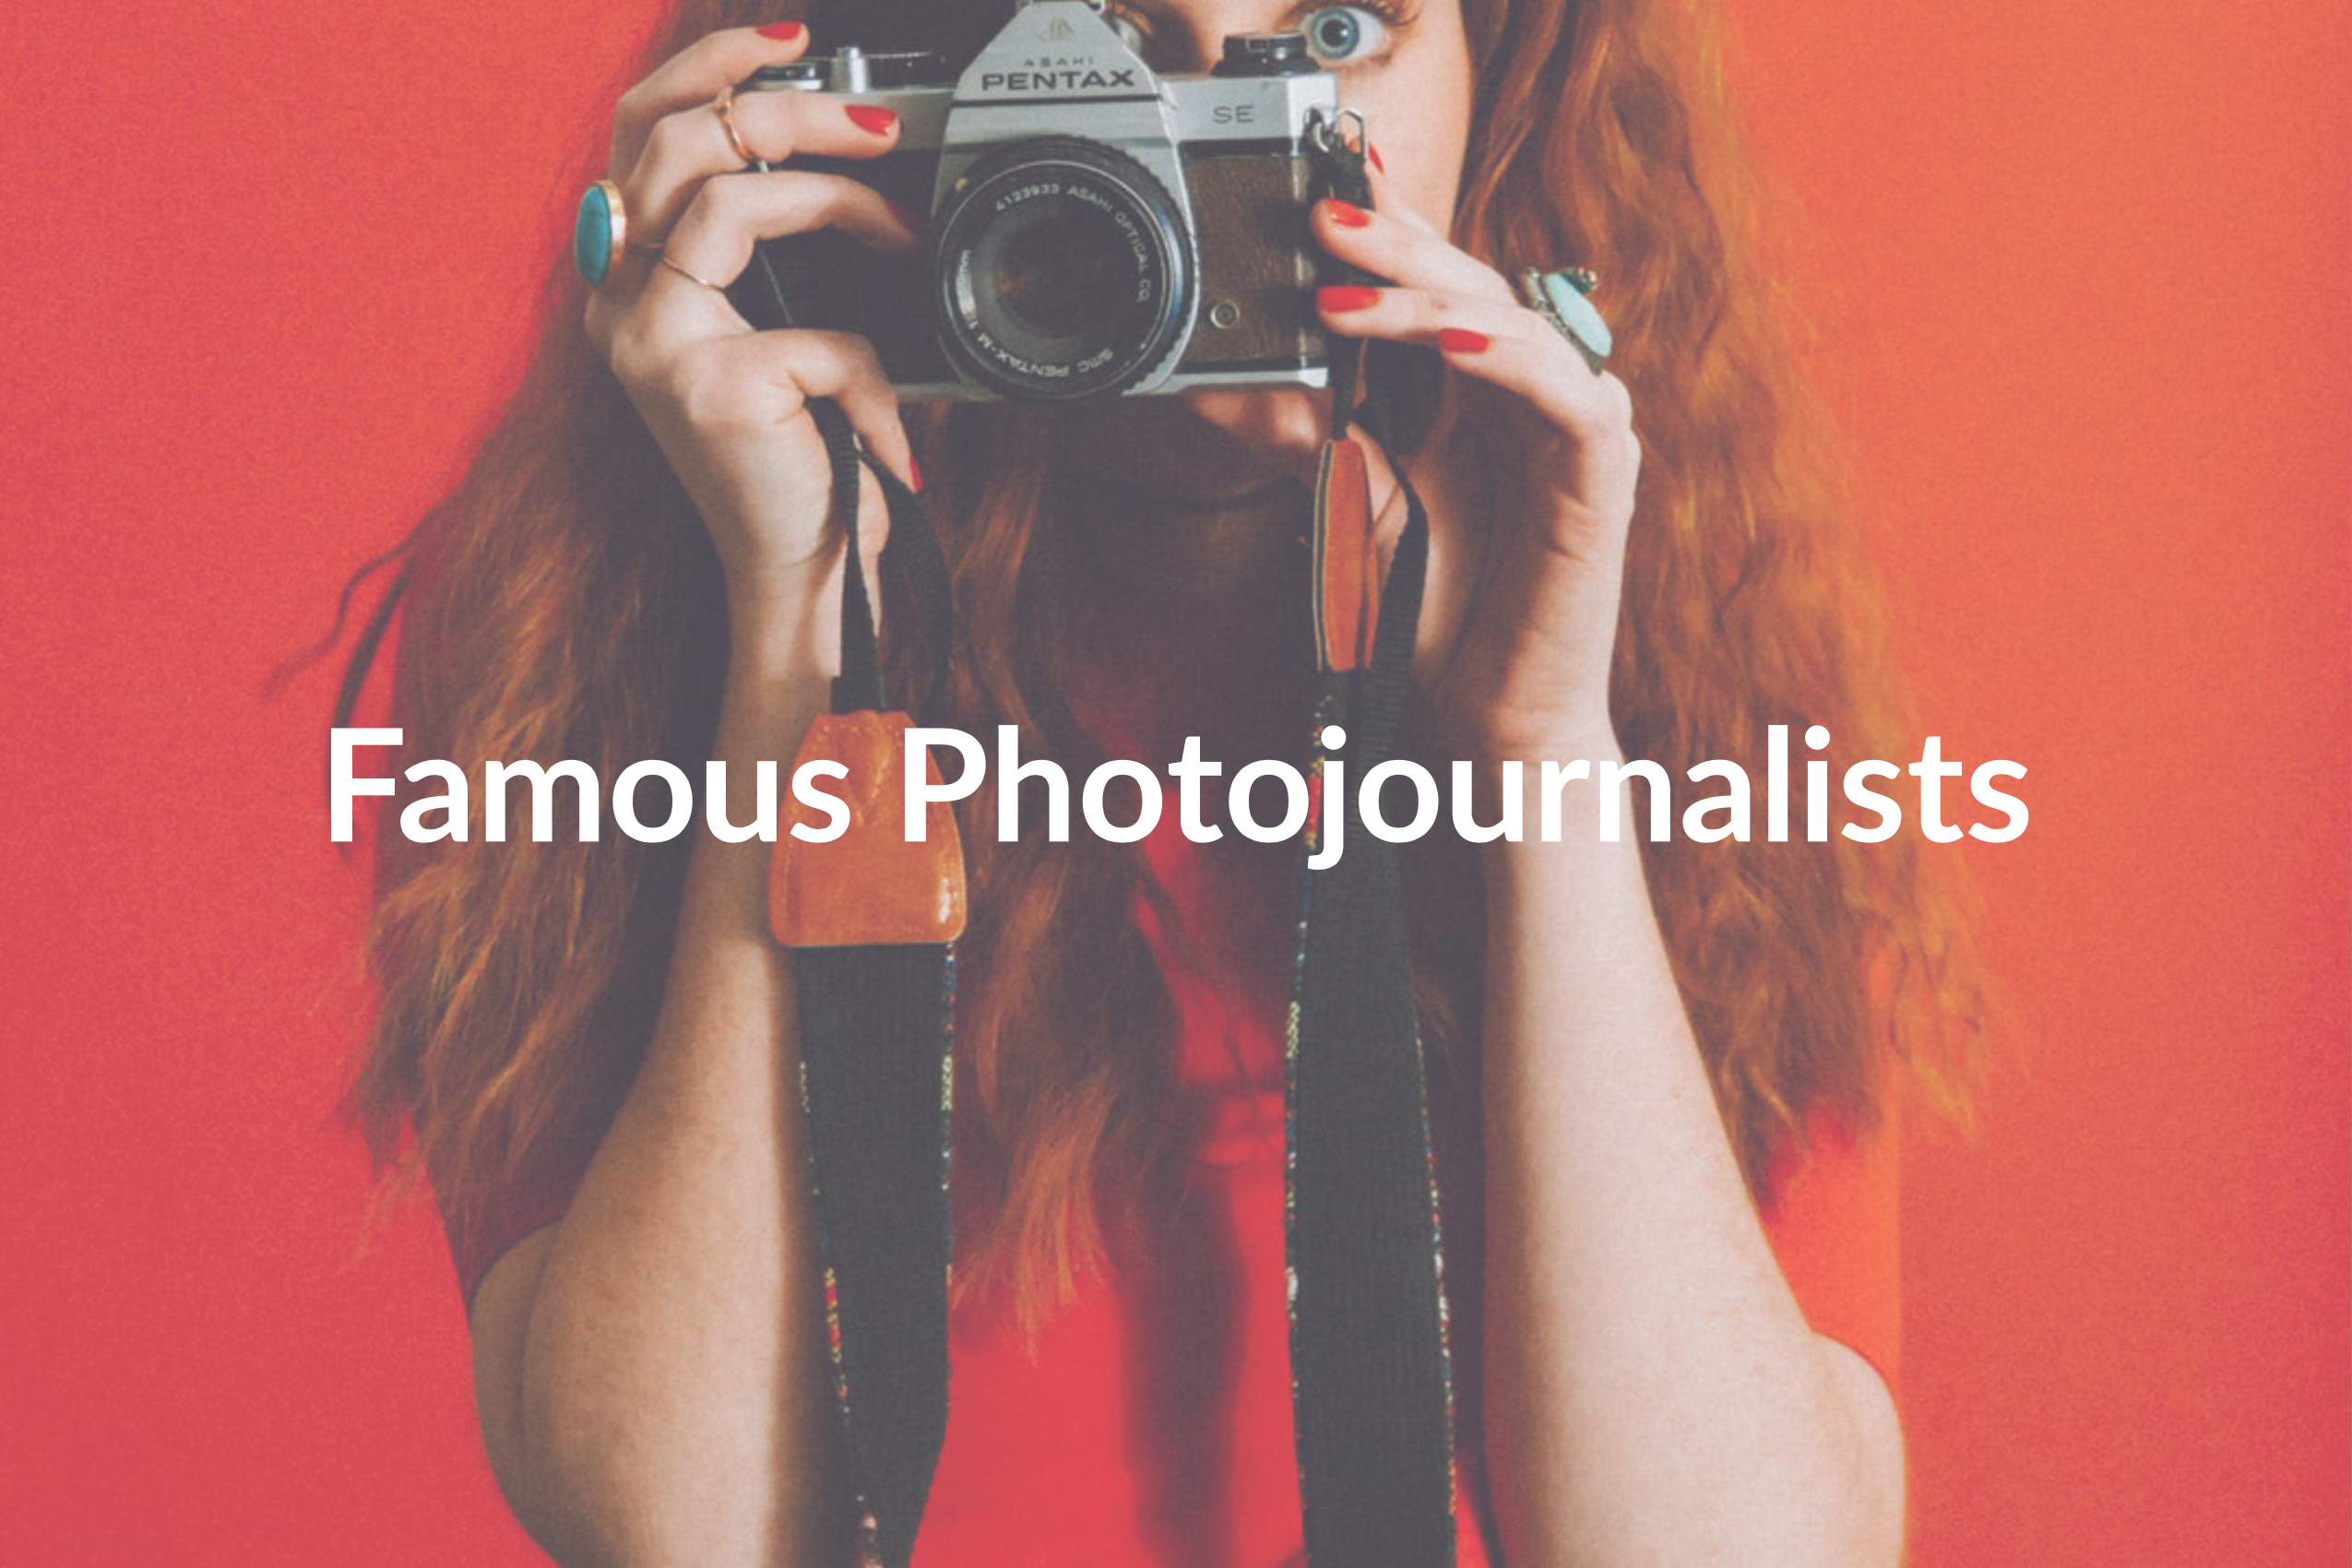 7 Famous Photojournalists You Need to Follow on Instagram